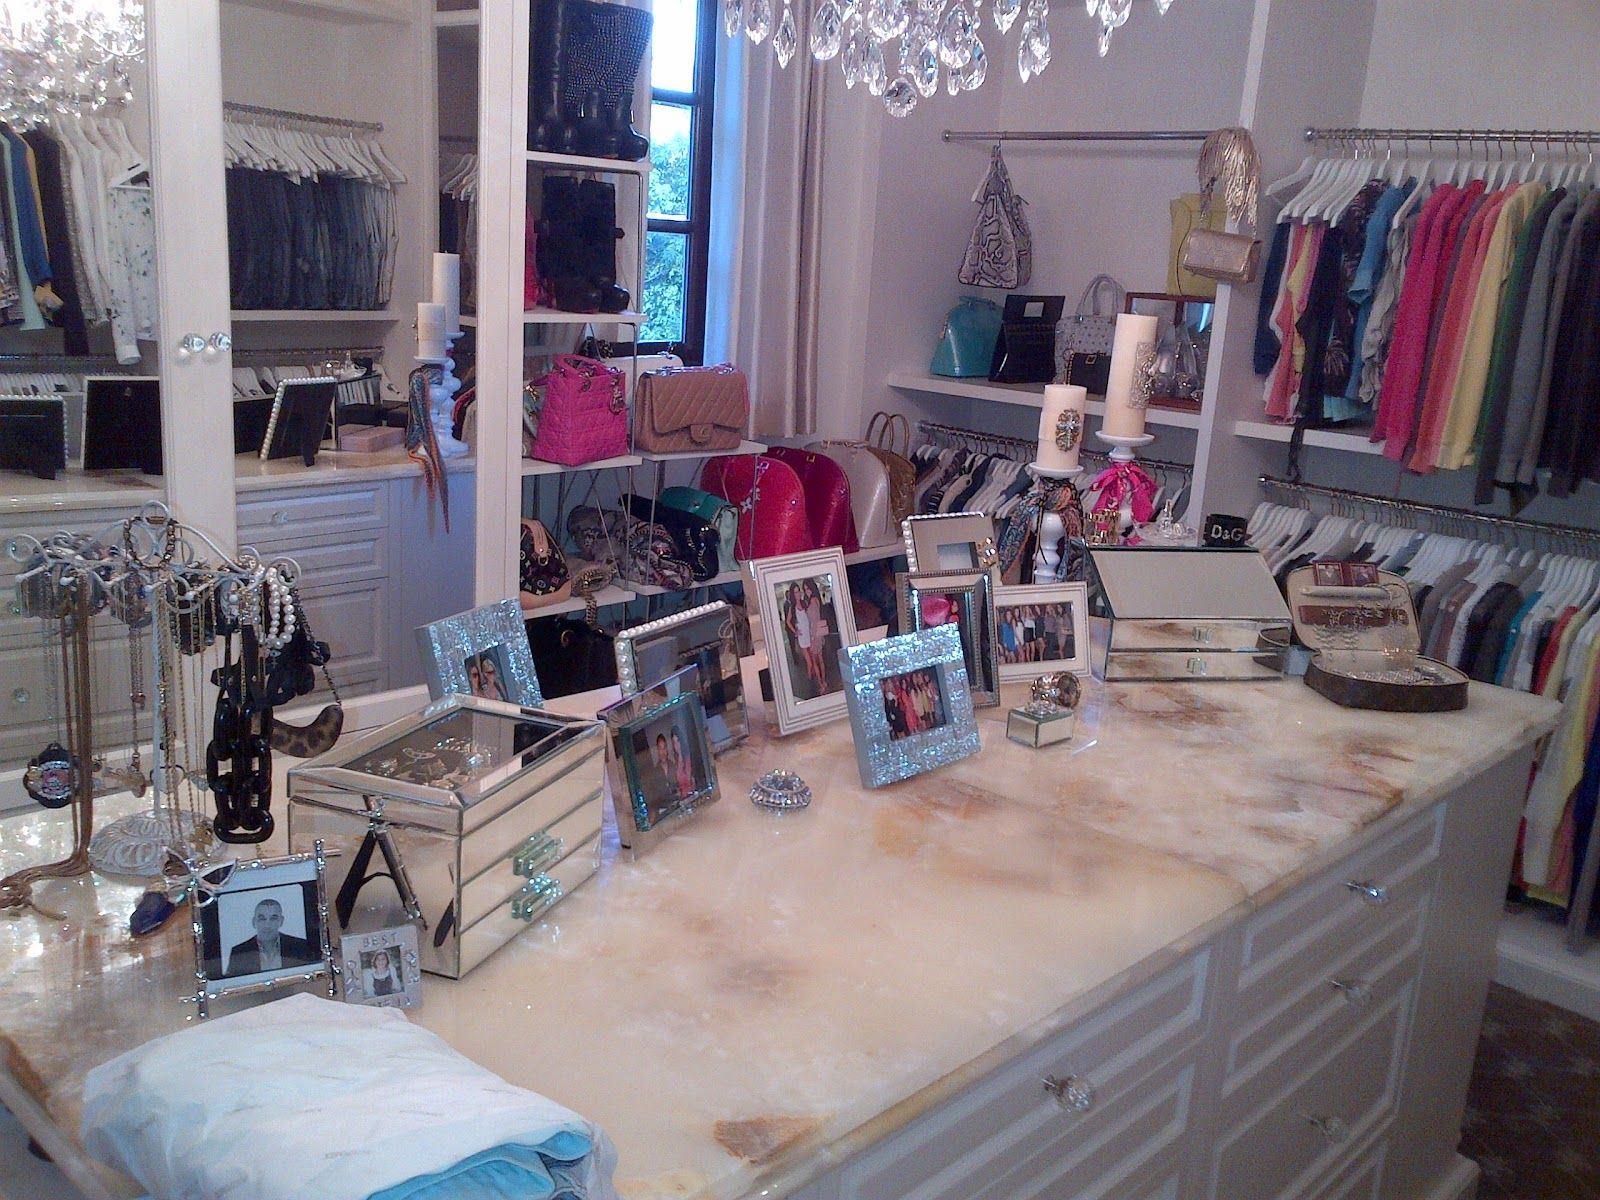 Jennifer Stano David Dolled Up Her Closet With Z Gallerie